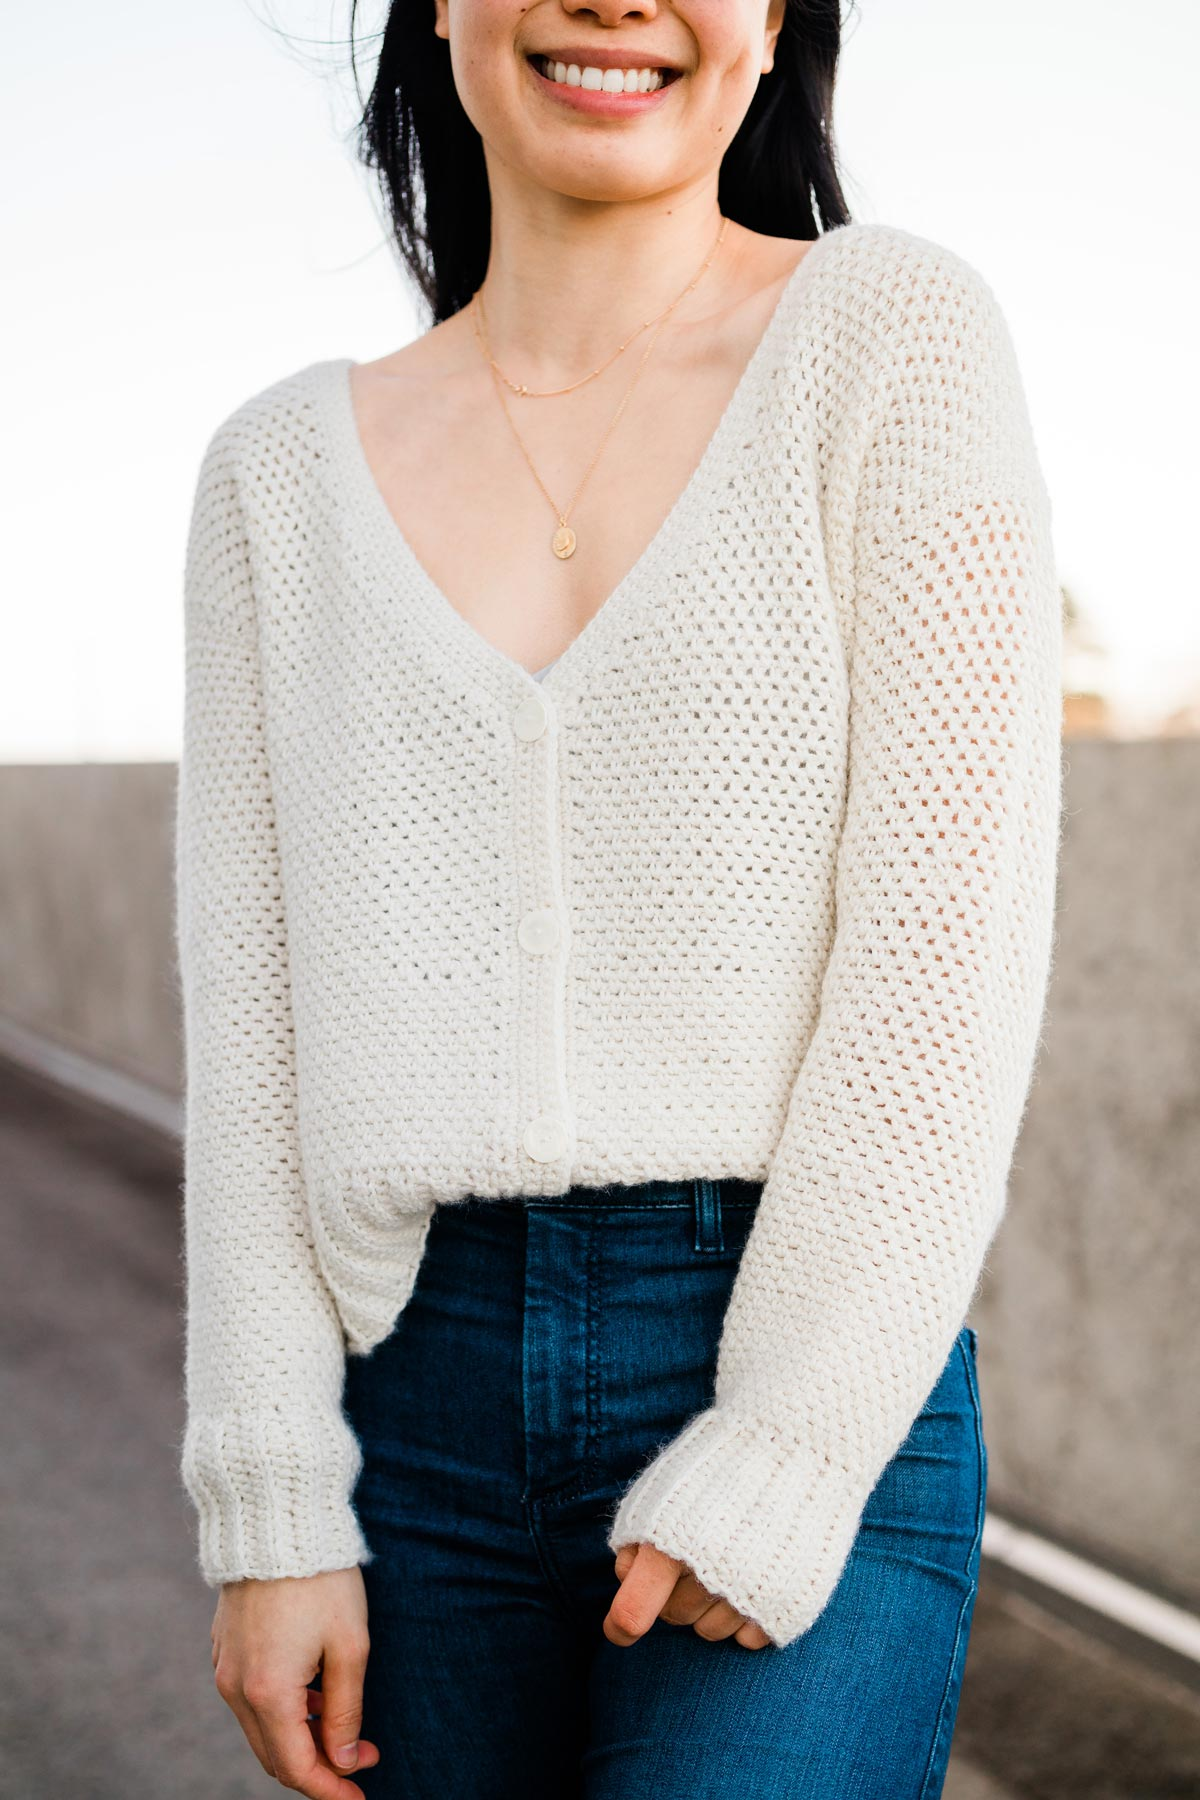 v-neck button down cardigan in baby alpaca yarn paired with blue jeans